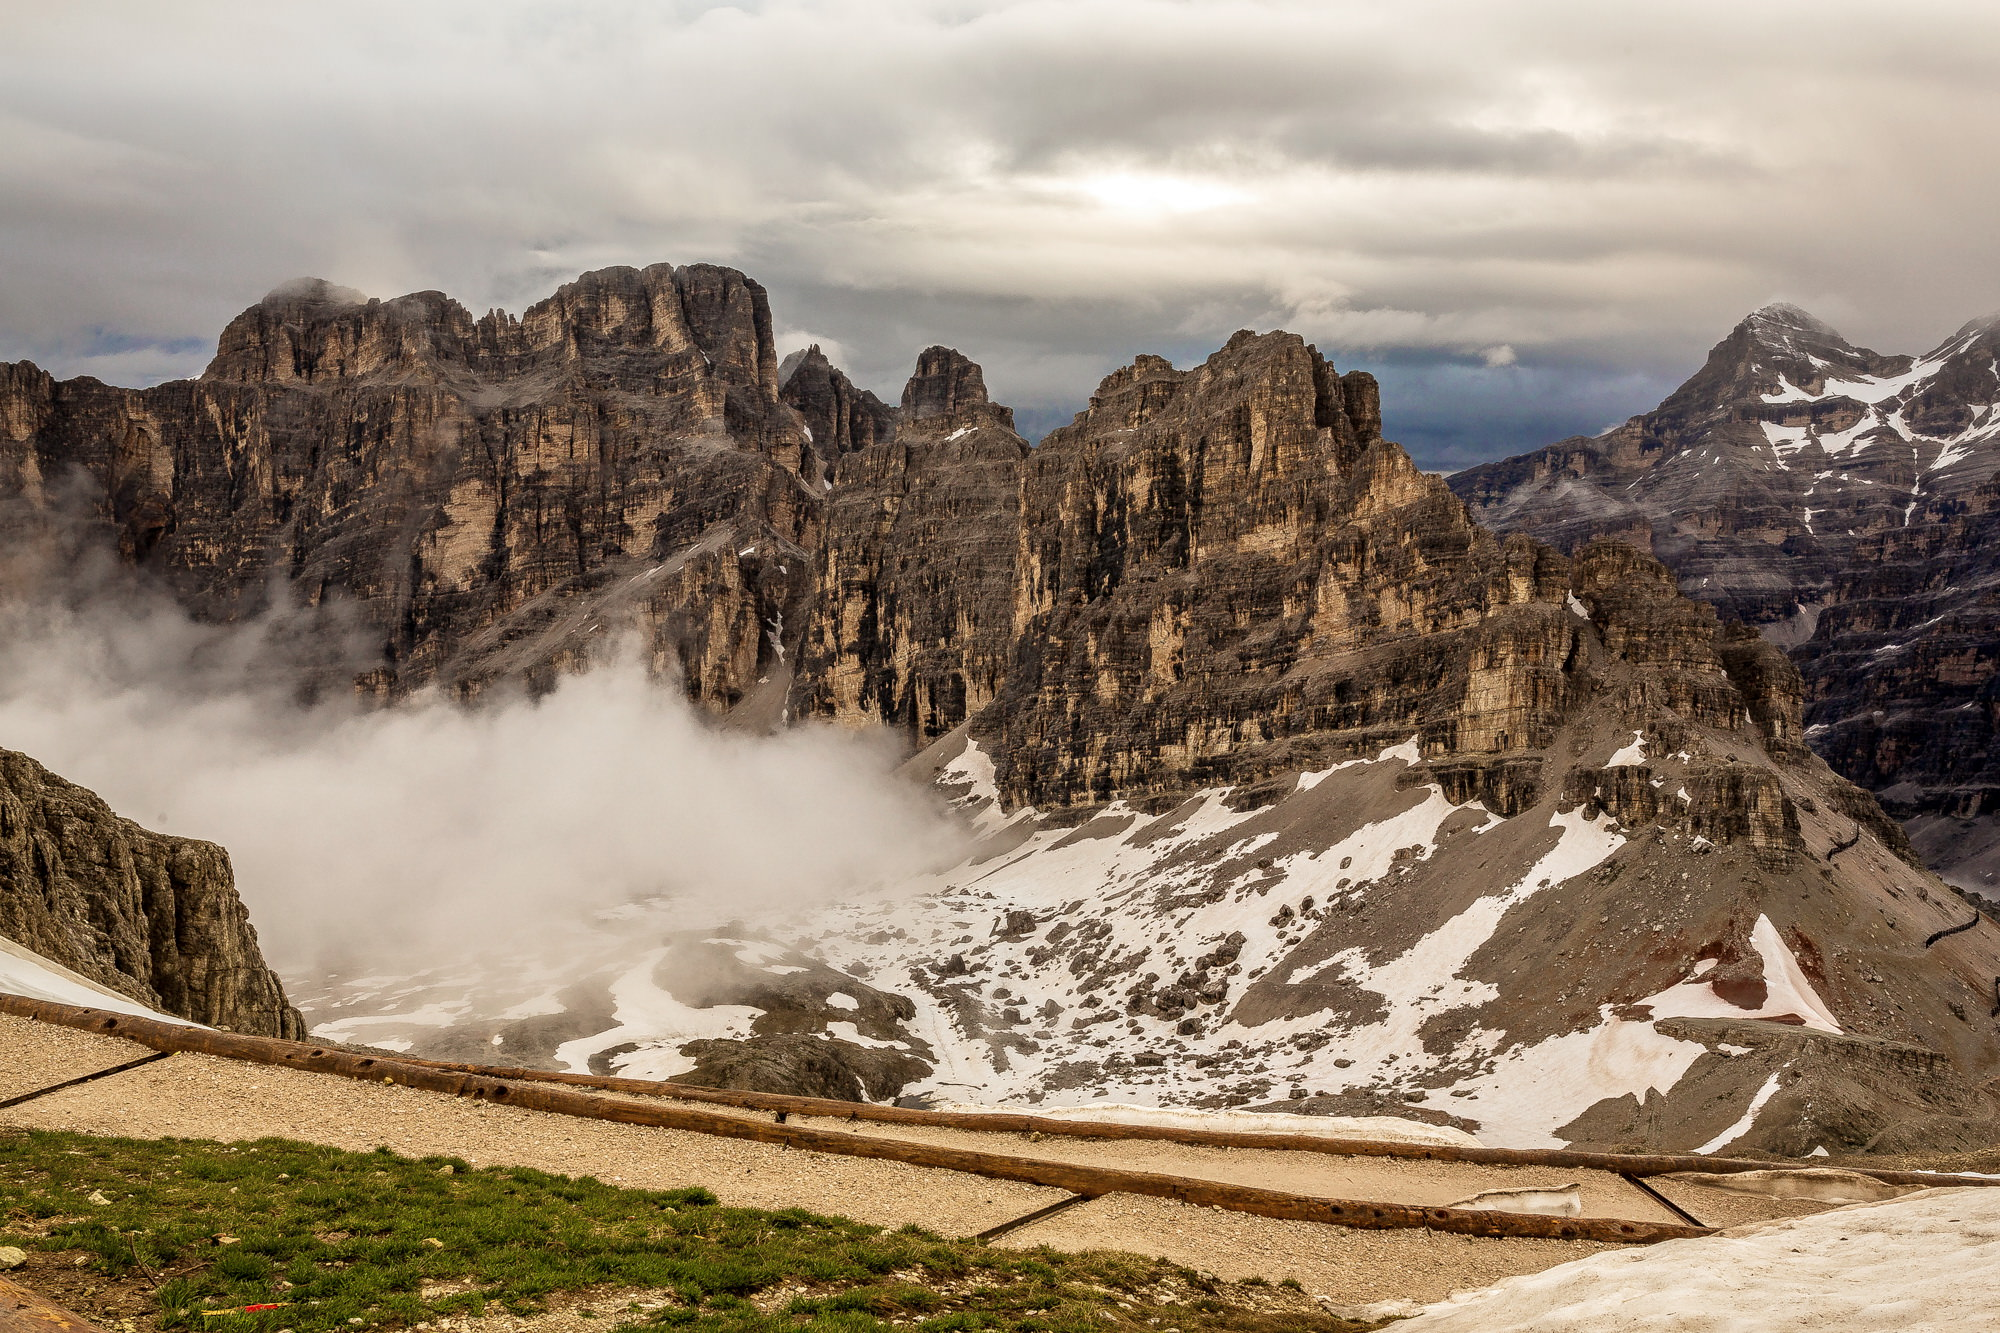 The Alps 2014-Italy-Dolomites 18